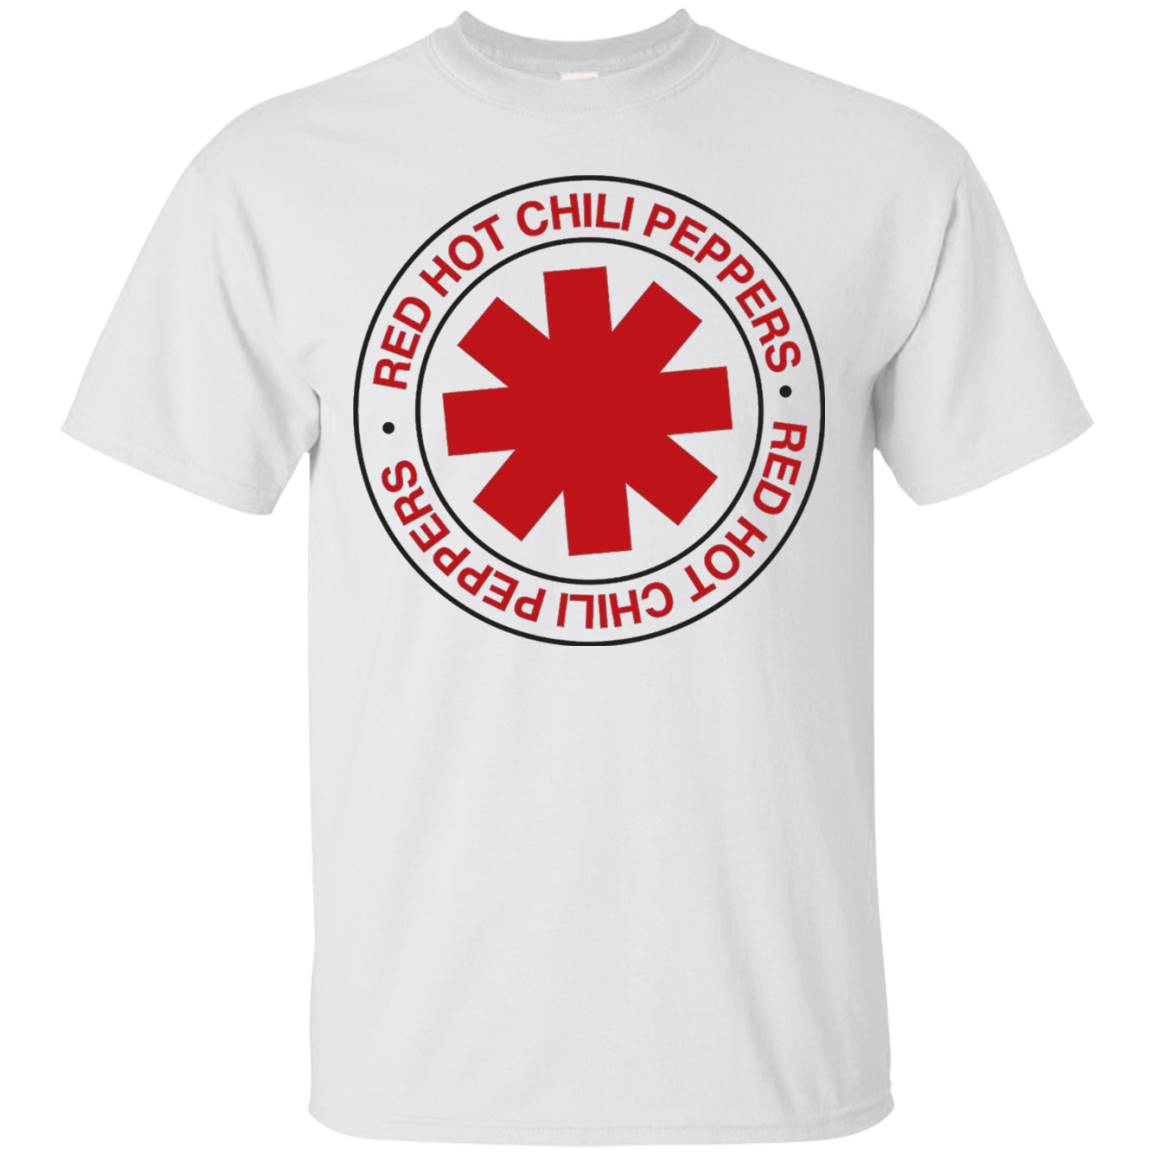 Red Hot Chili Peppers Vintage Distressed T-Shirt Californica